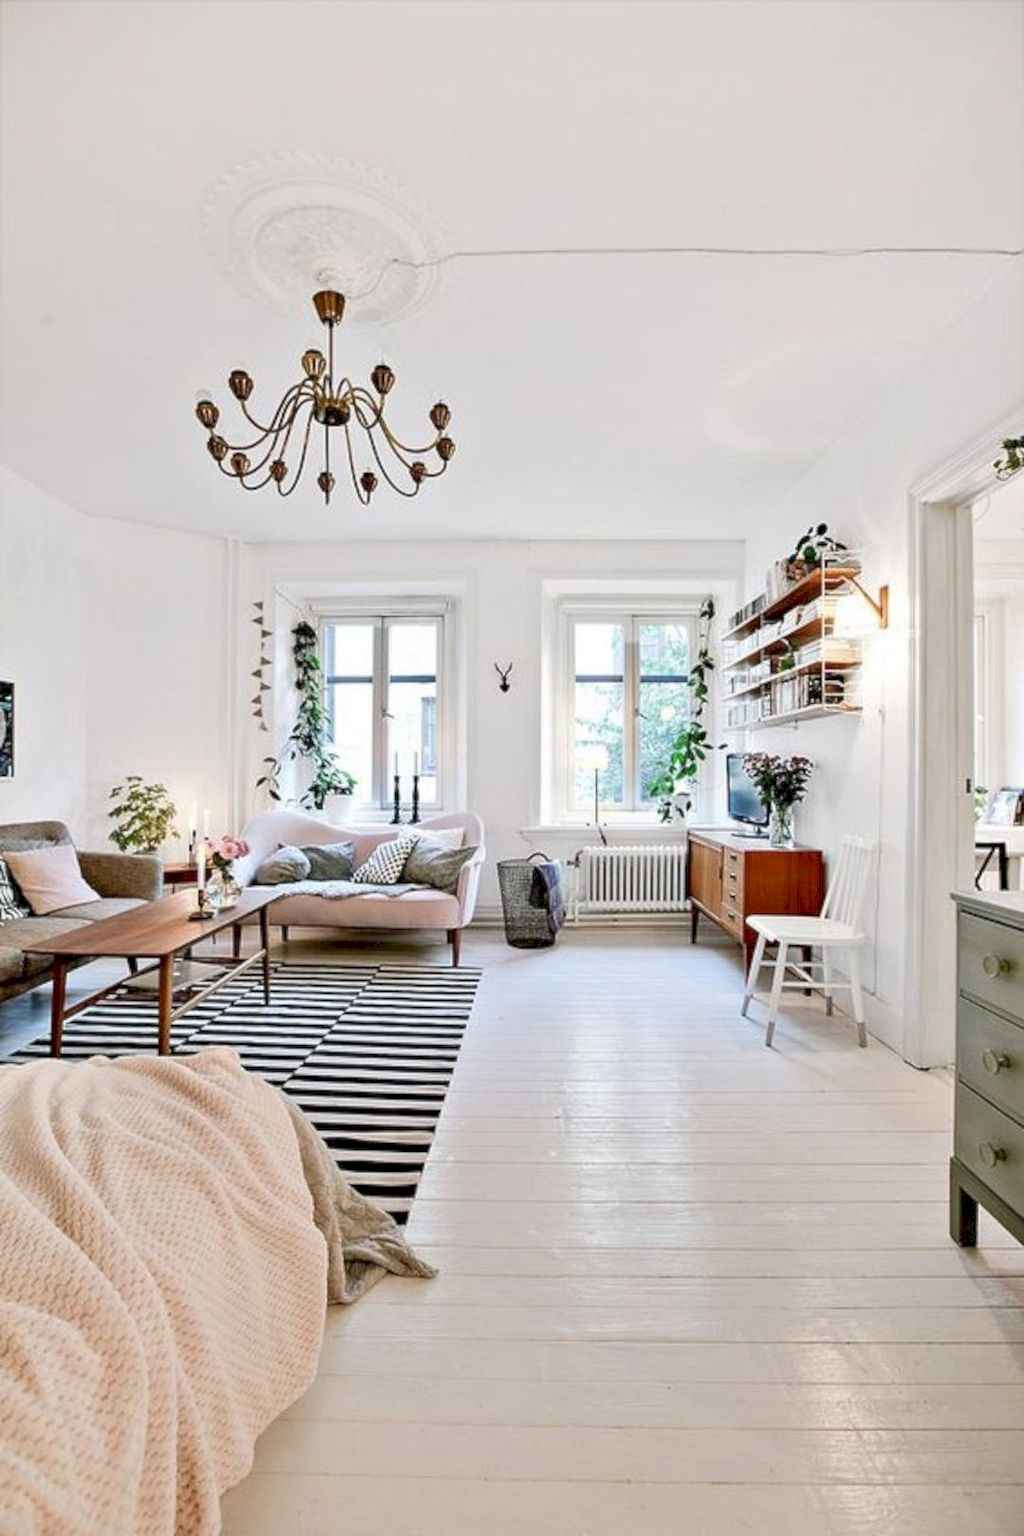 Amazing small first apartment decorating ideas (1)